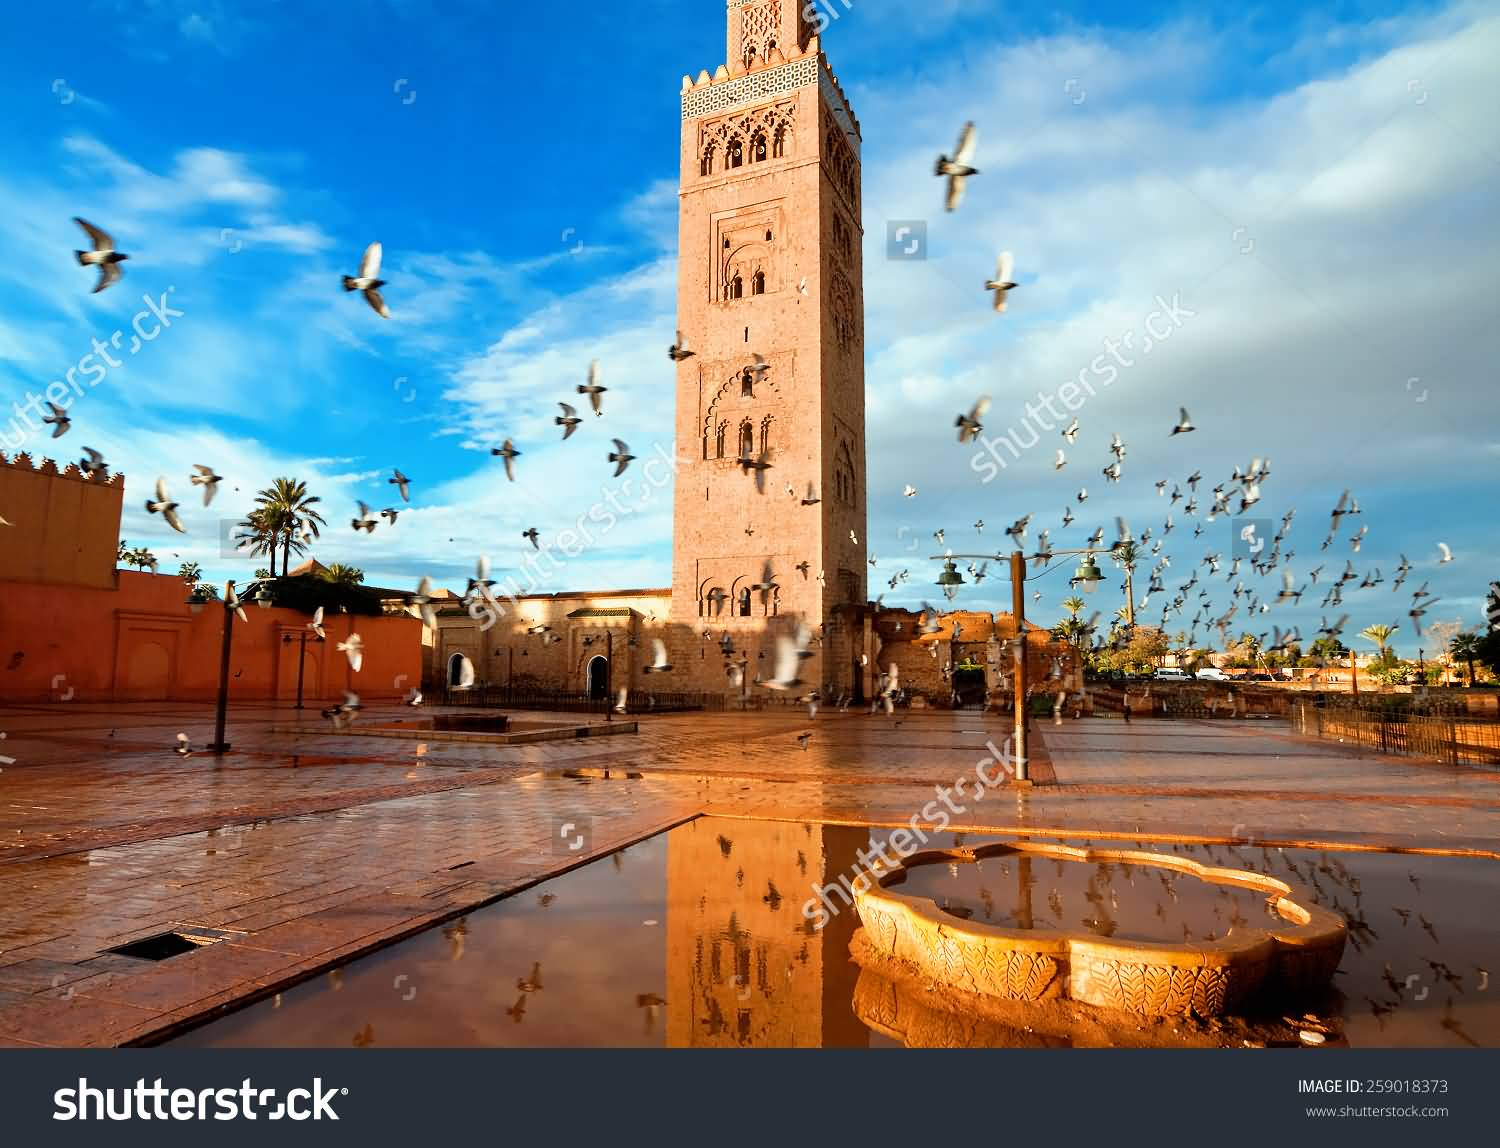 koutoubia mosque courtyard. Black Bedroom Furniture Sets. Home Design Ideas